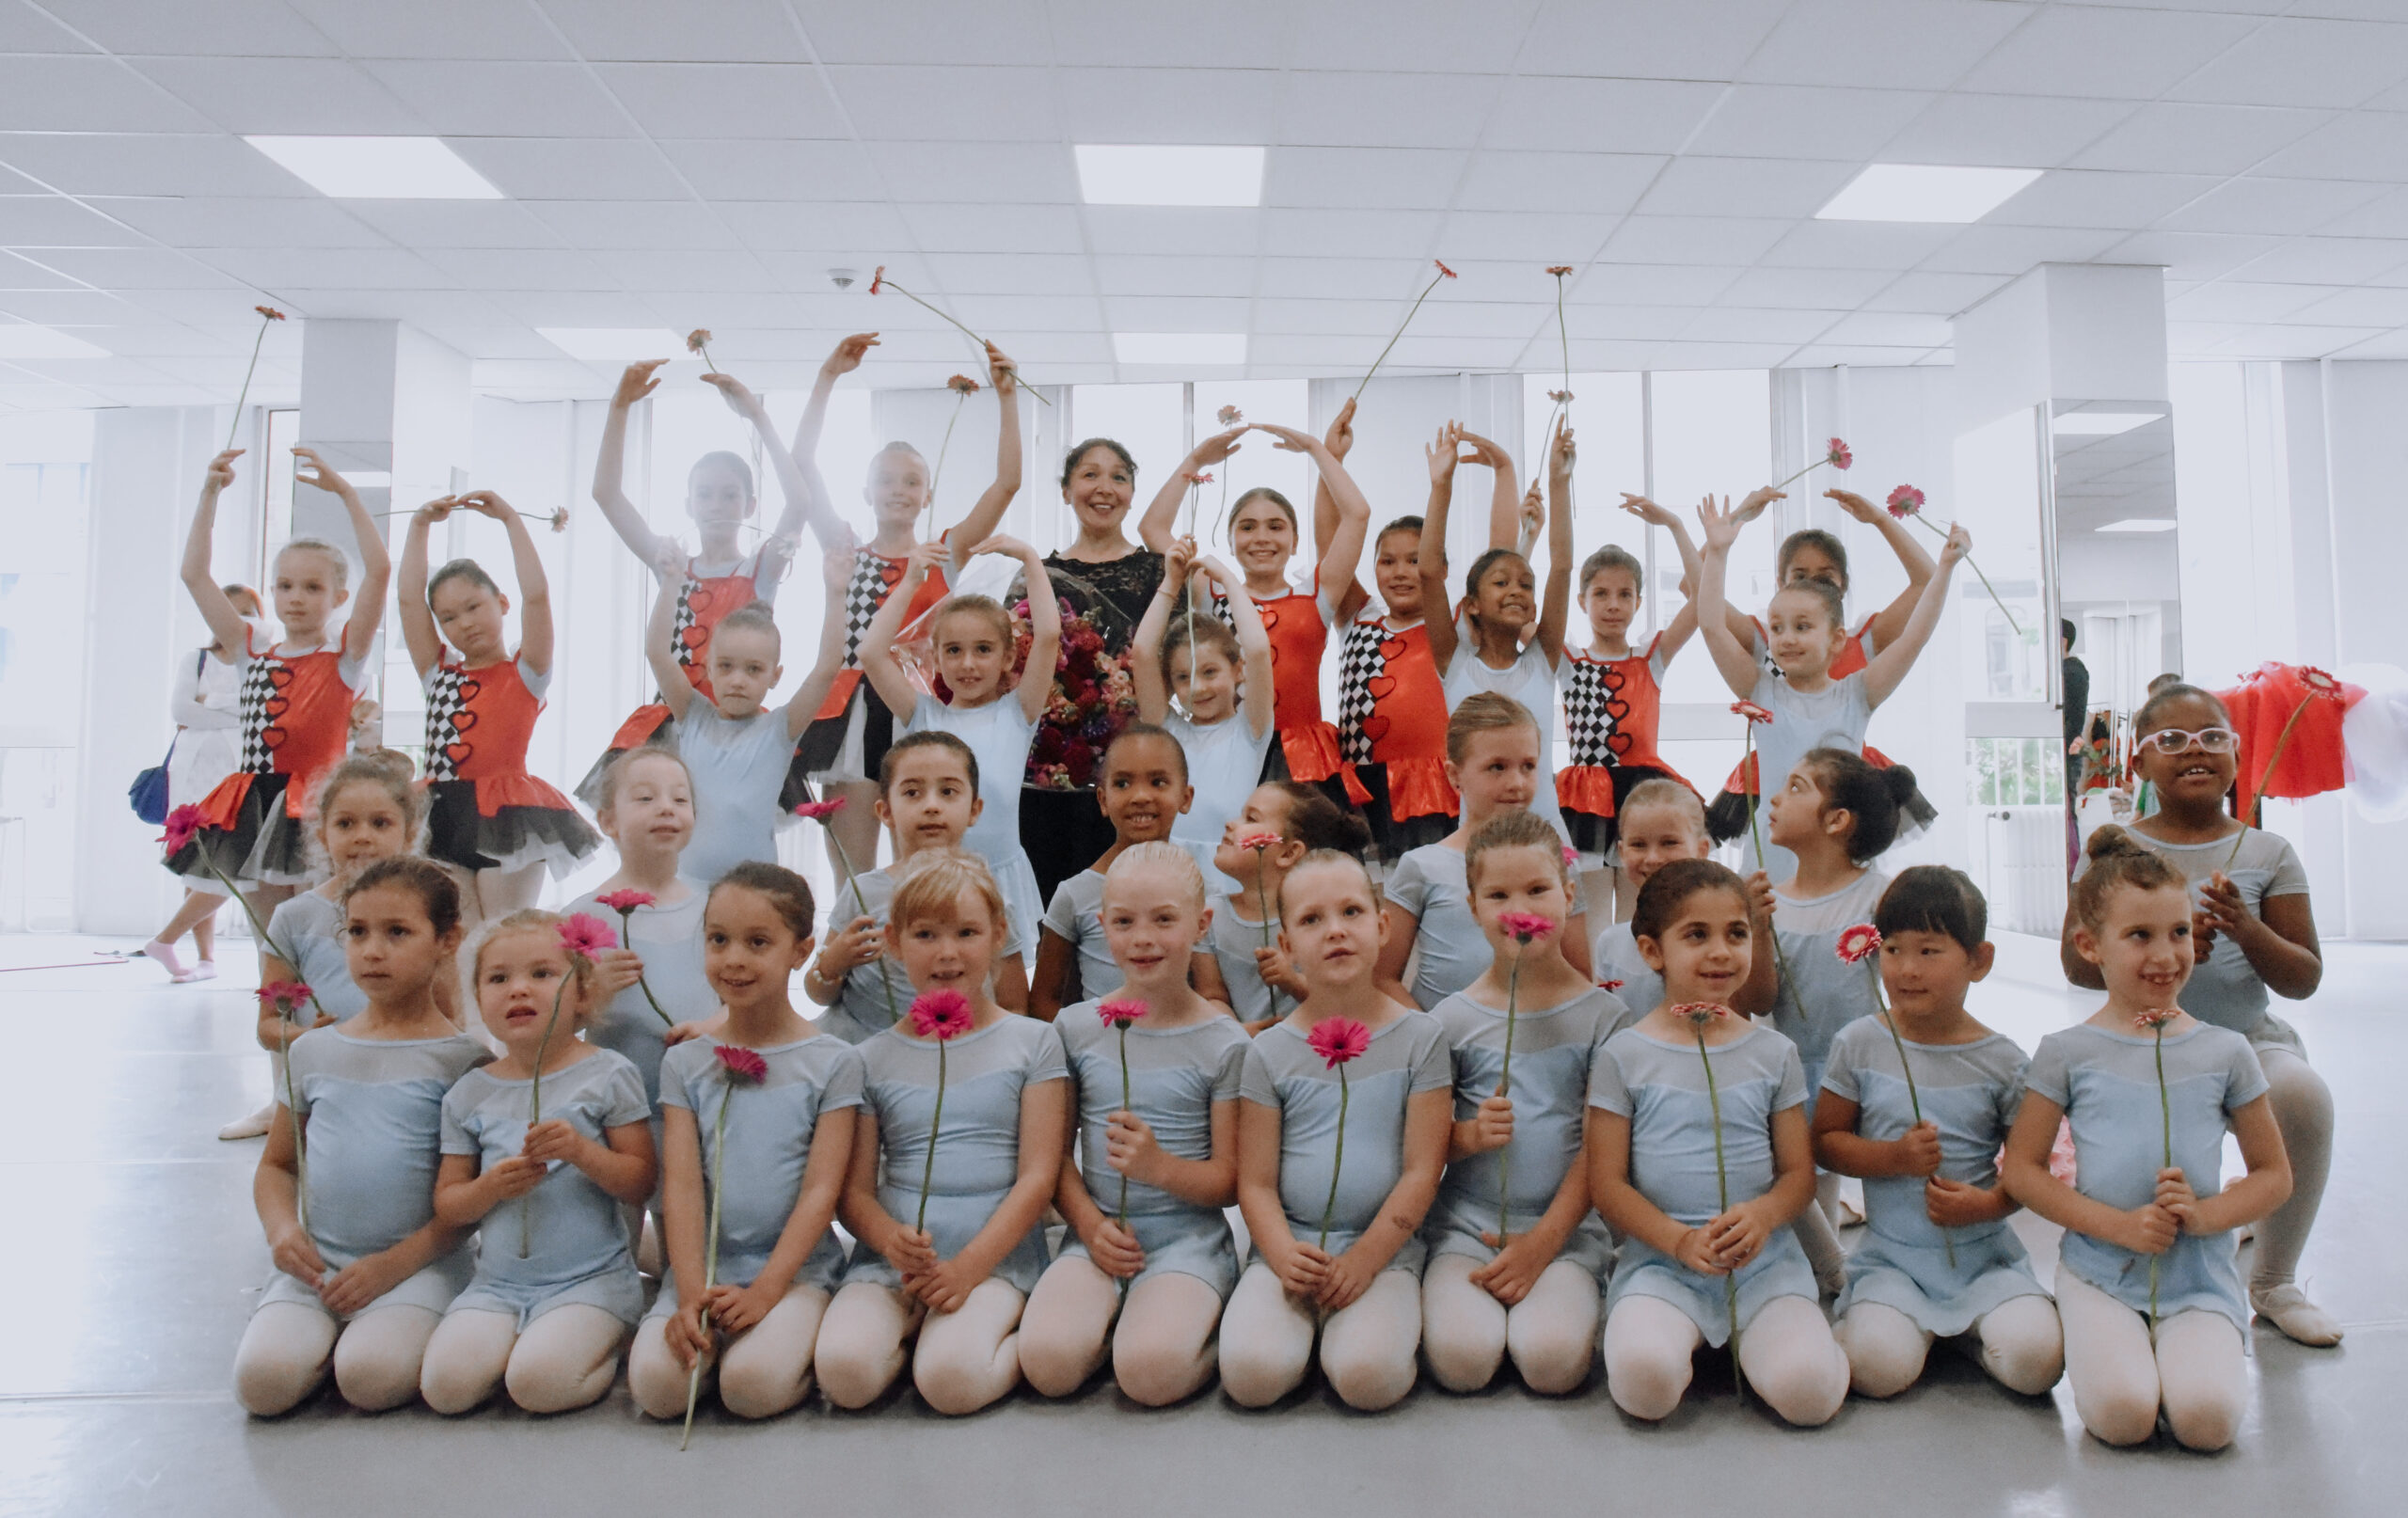 children in a ballet studio holding flowers after the show